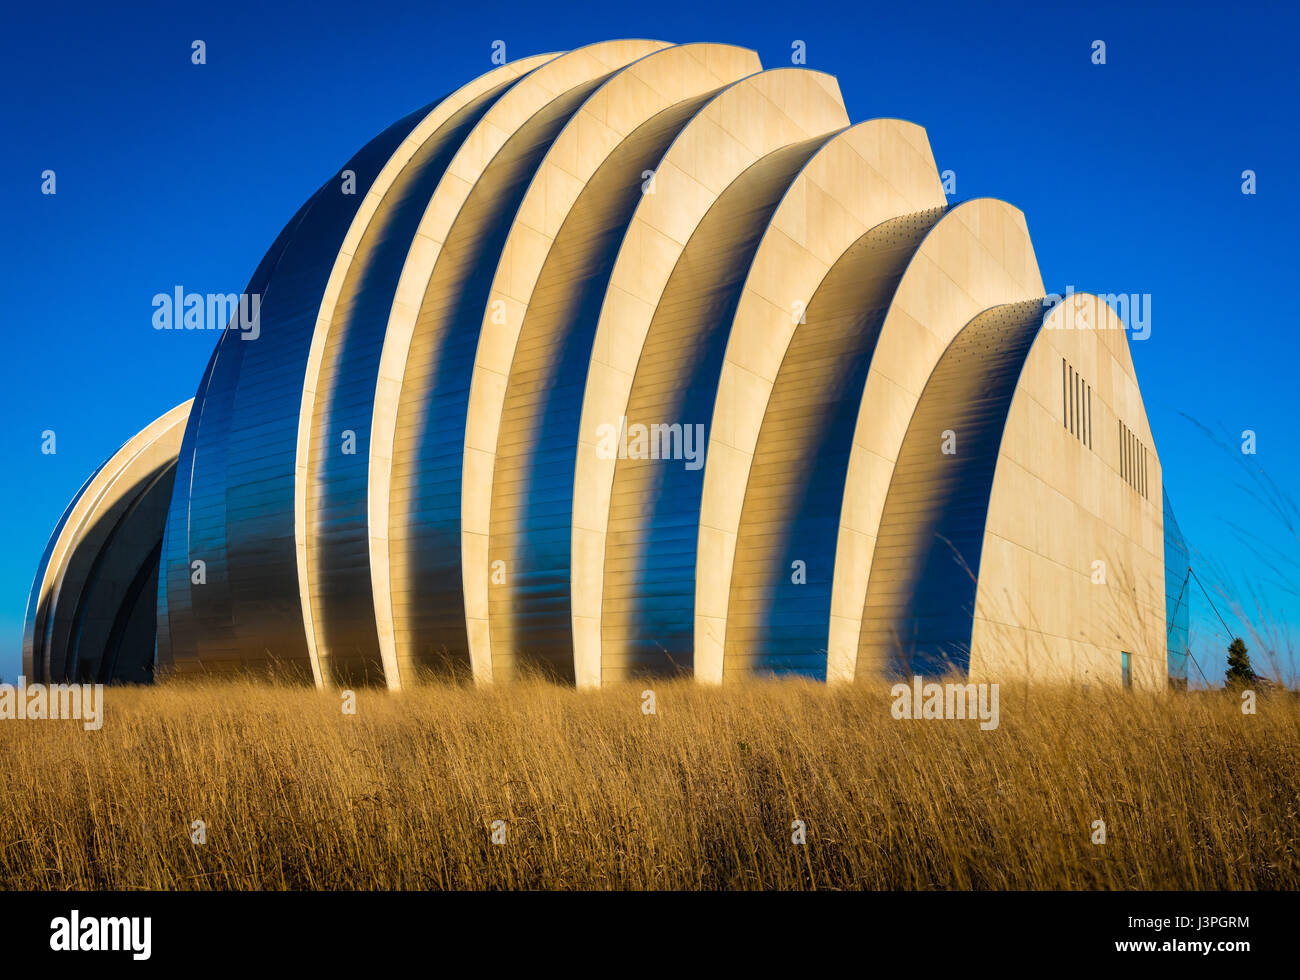 La Kauffman Center for the Performing Arts est un centre des arts dans le centre-ville de Kansas City, Missouri, Photo Stock